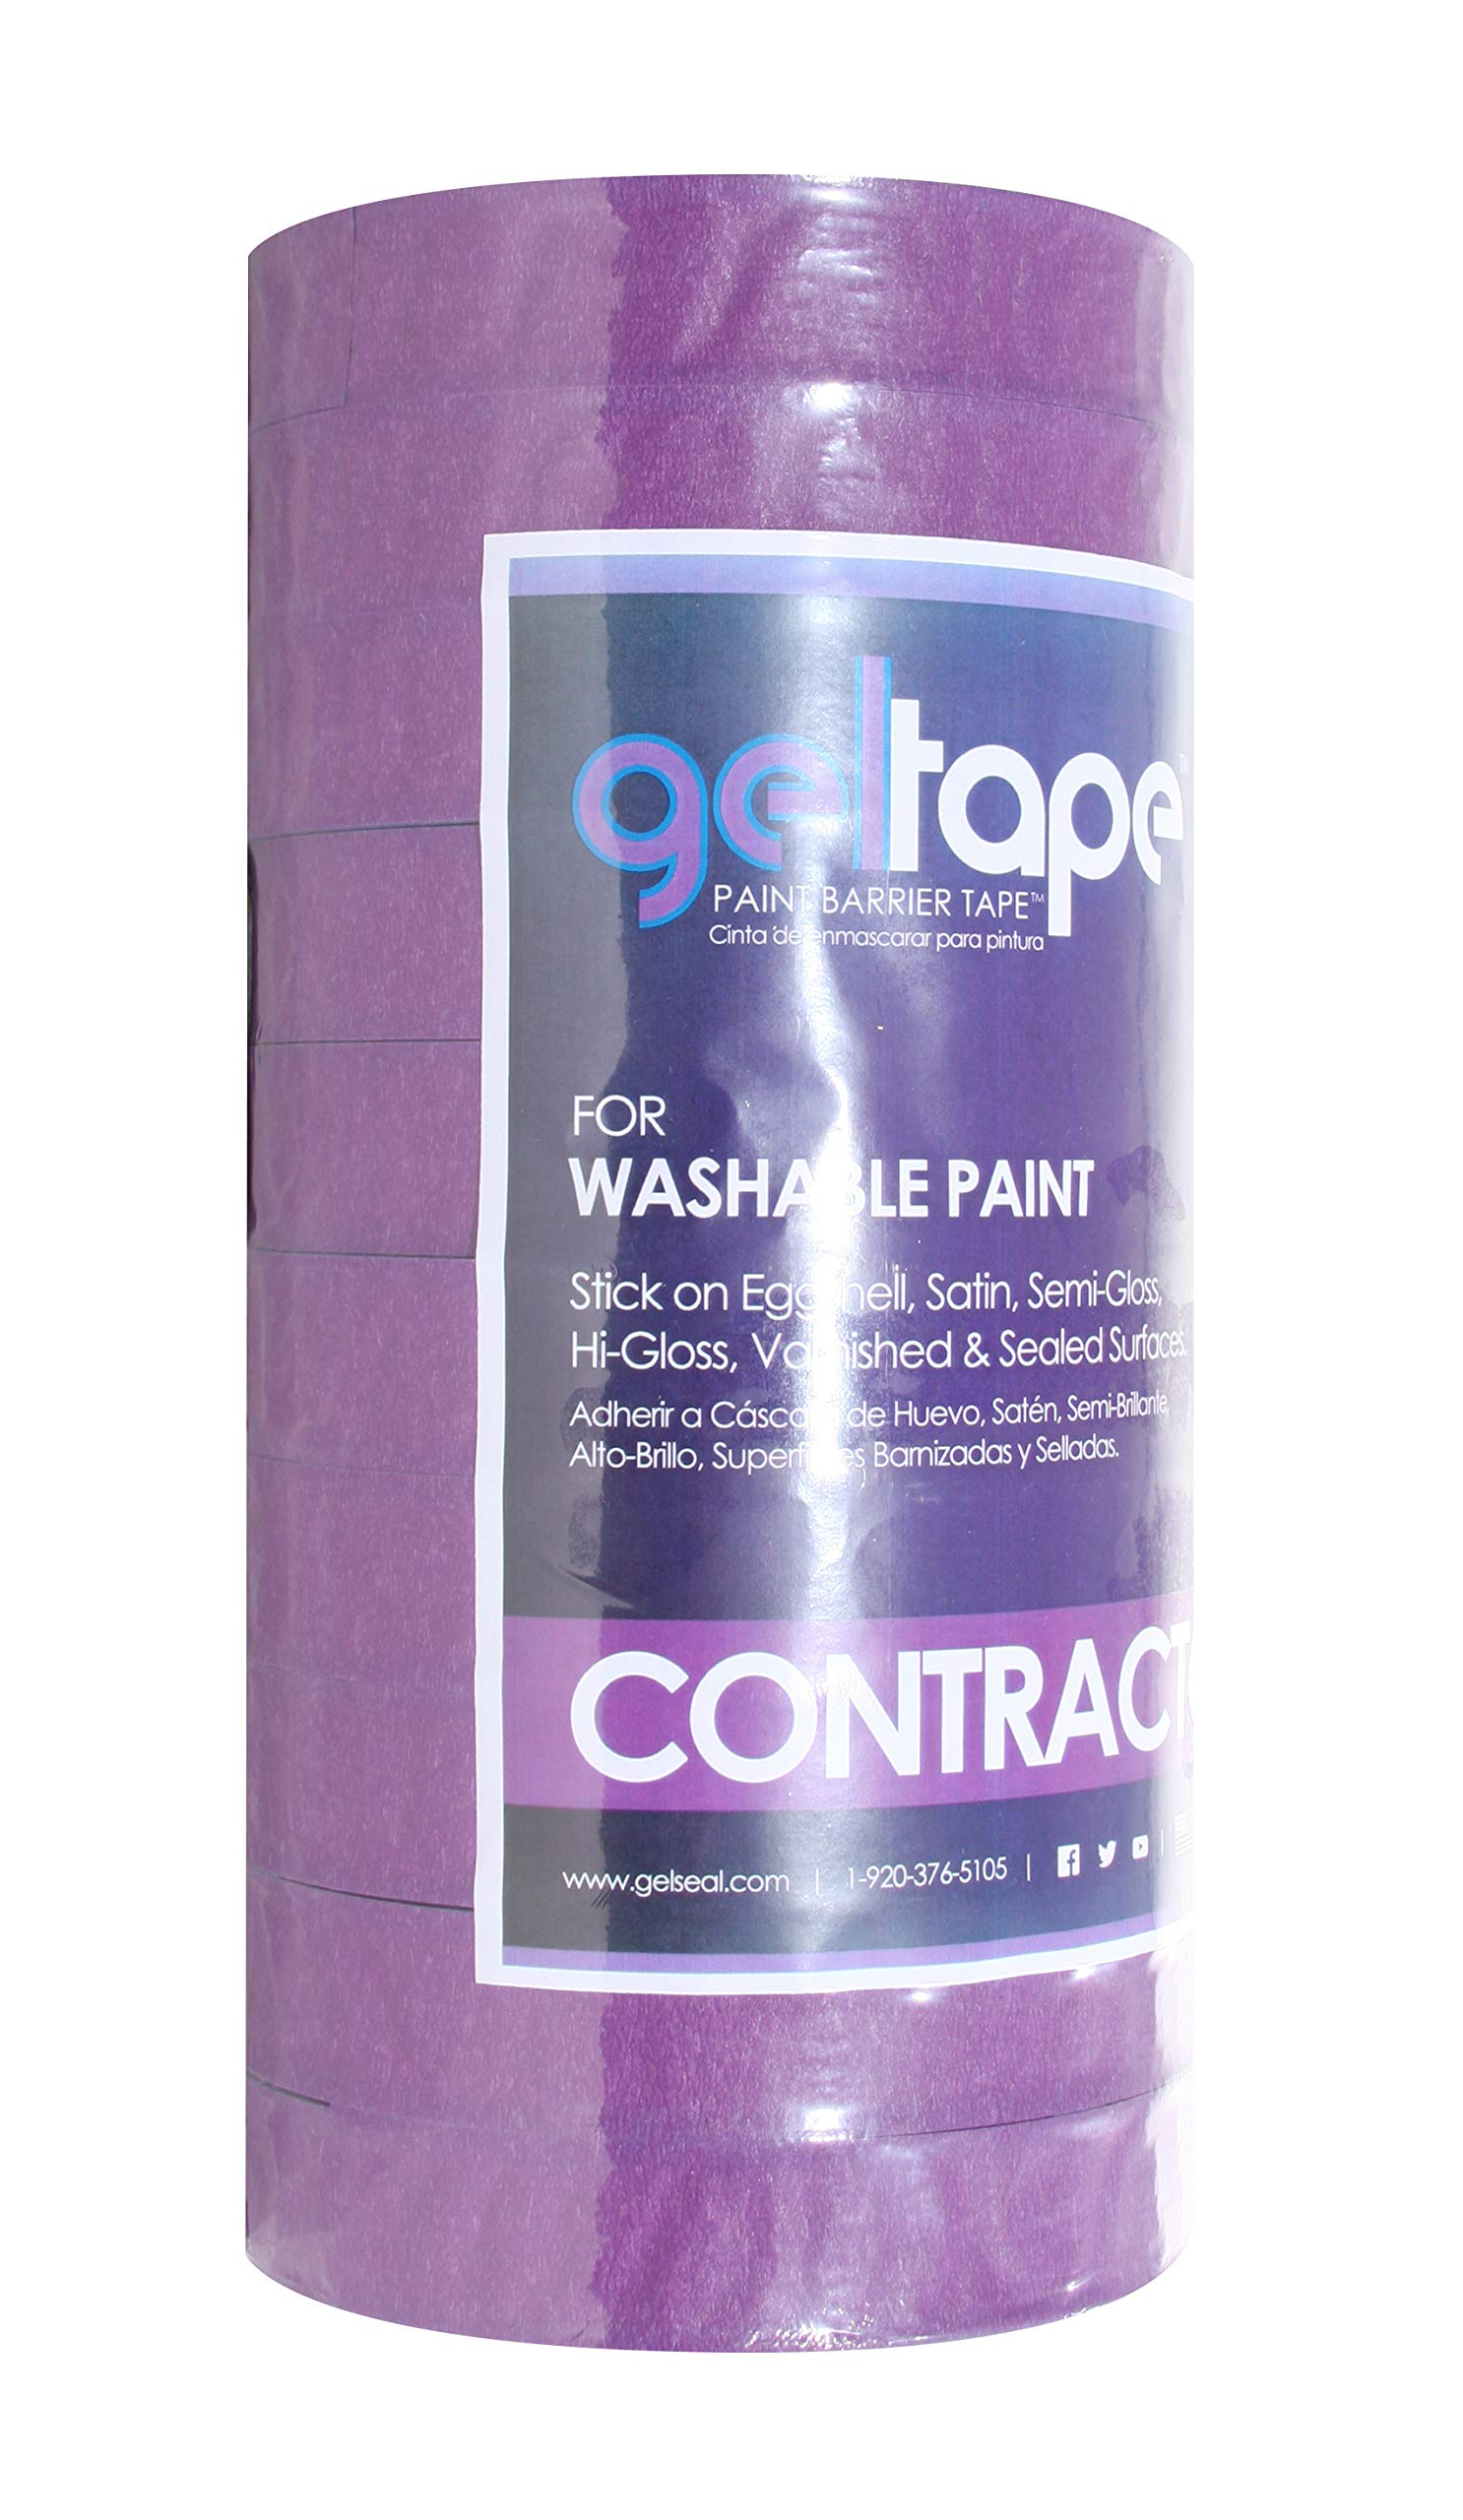 GelTape - Painter's Tape for Washable Textured Surfaces 10 Roll Contractor Pack